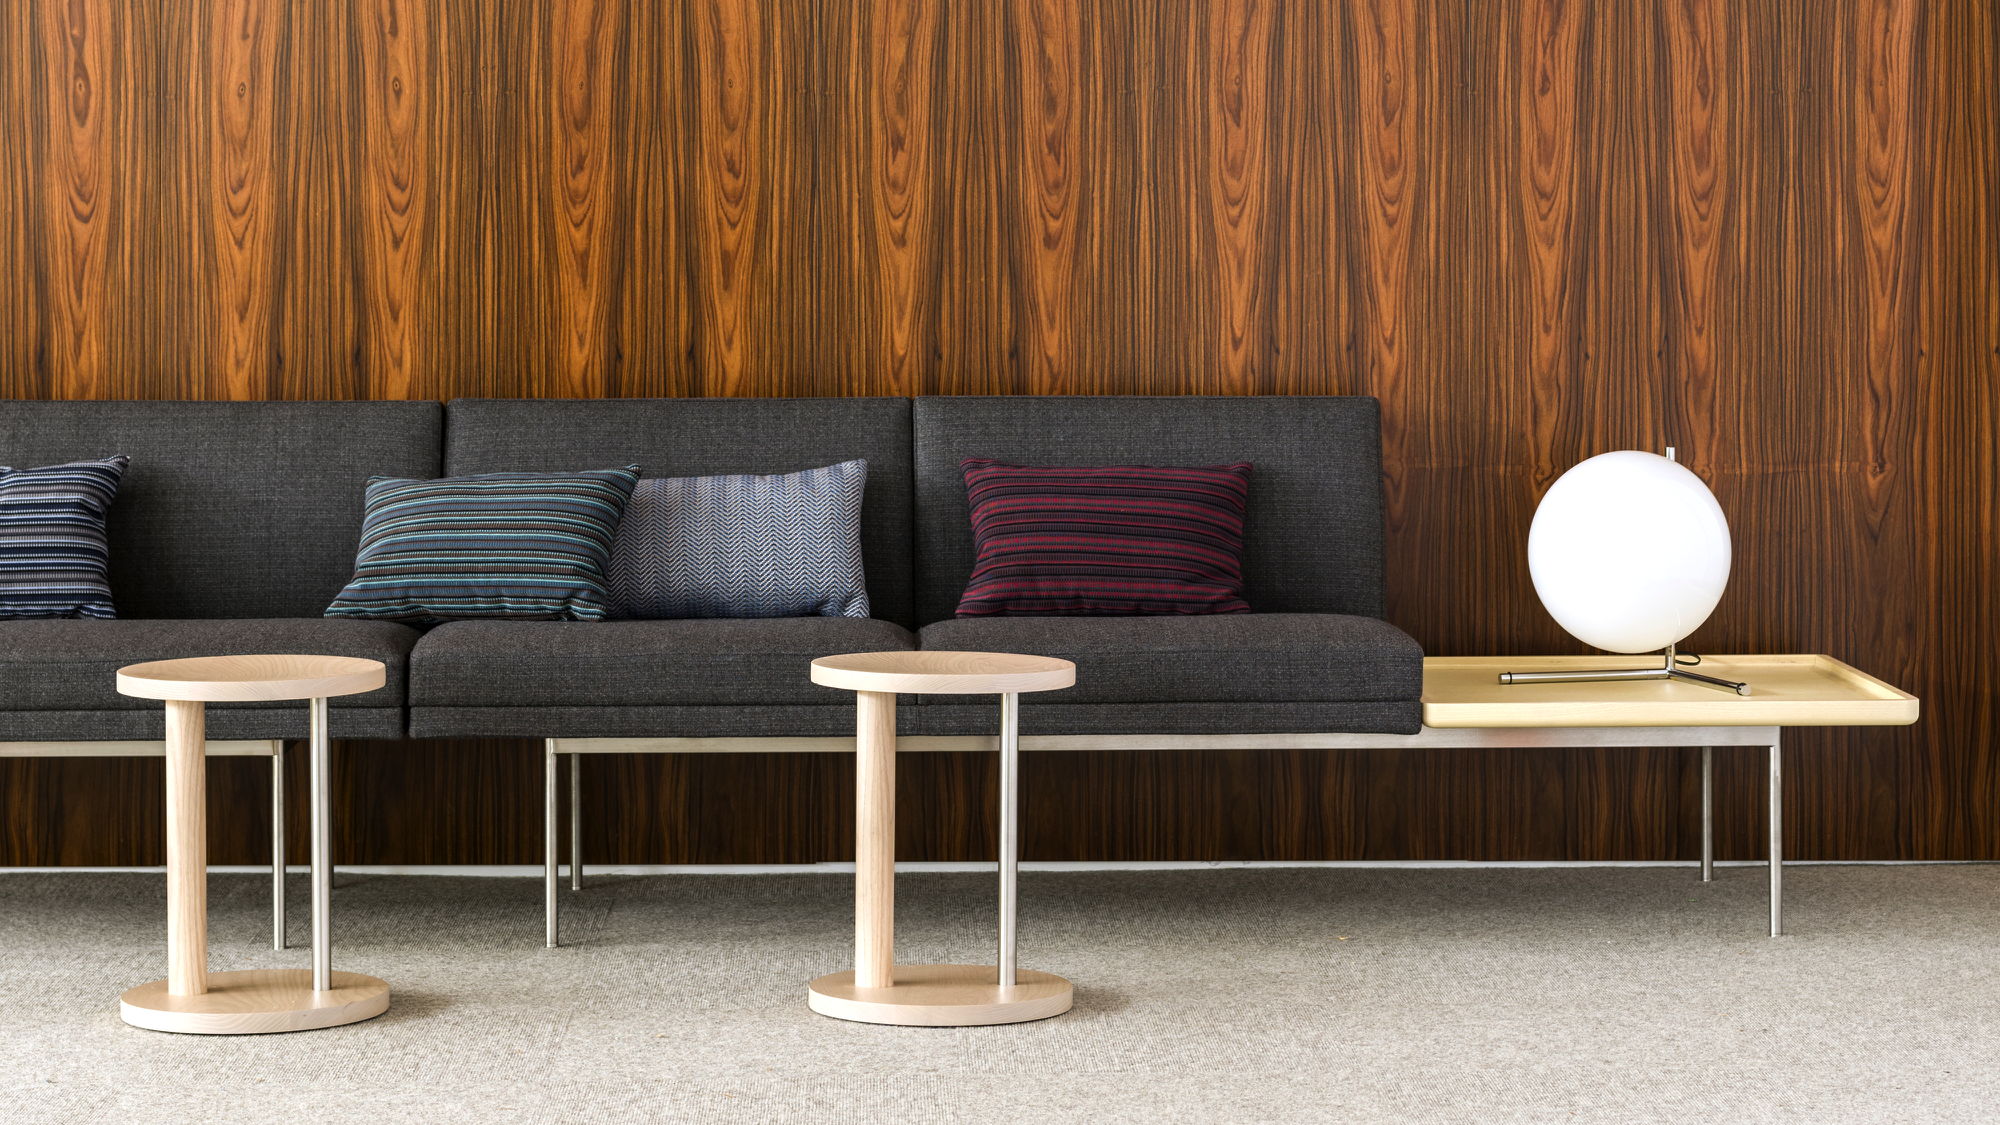 Tuxedo Component Lounge By Geiger Furniture Mobler Furniture